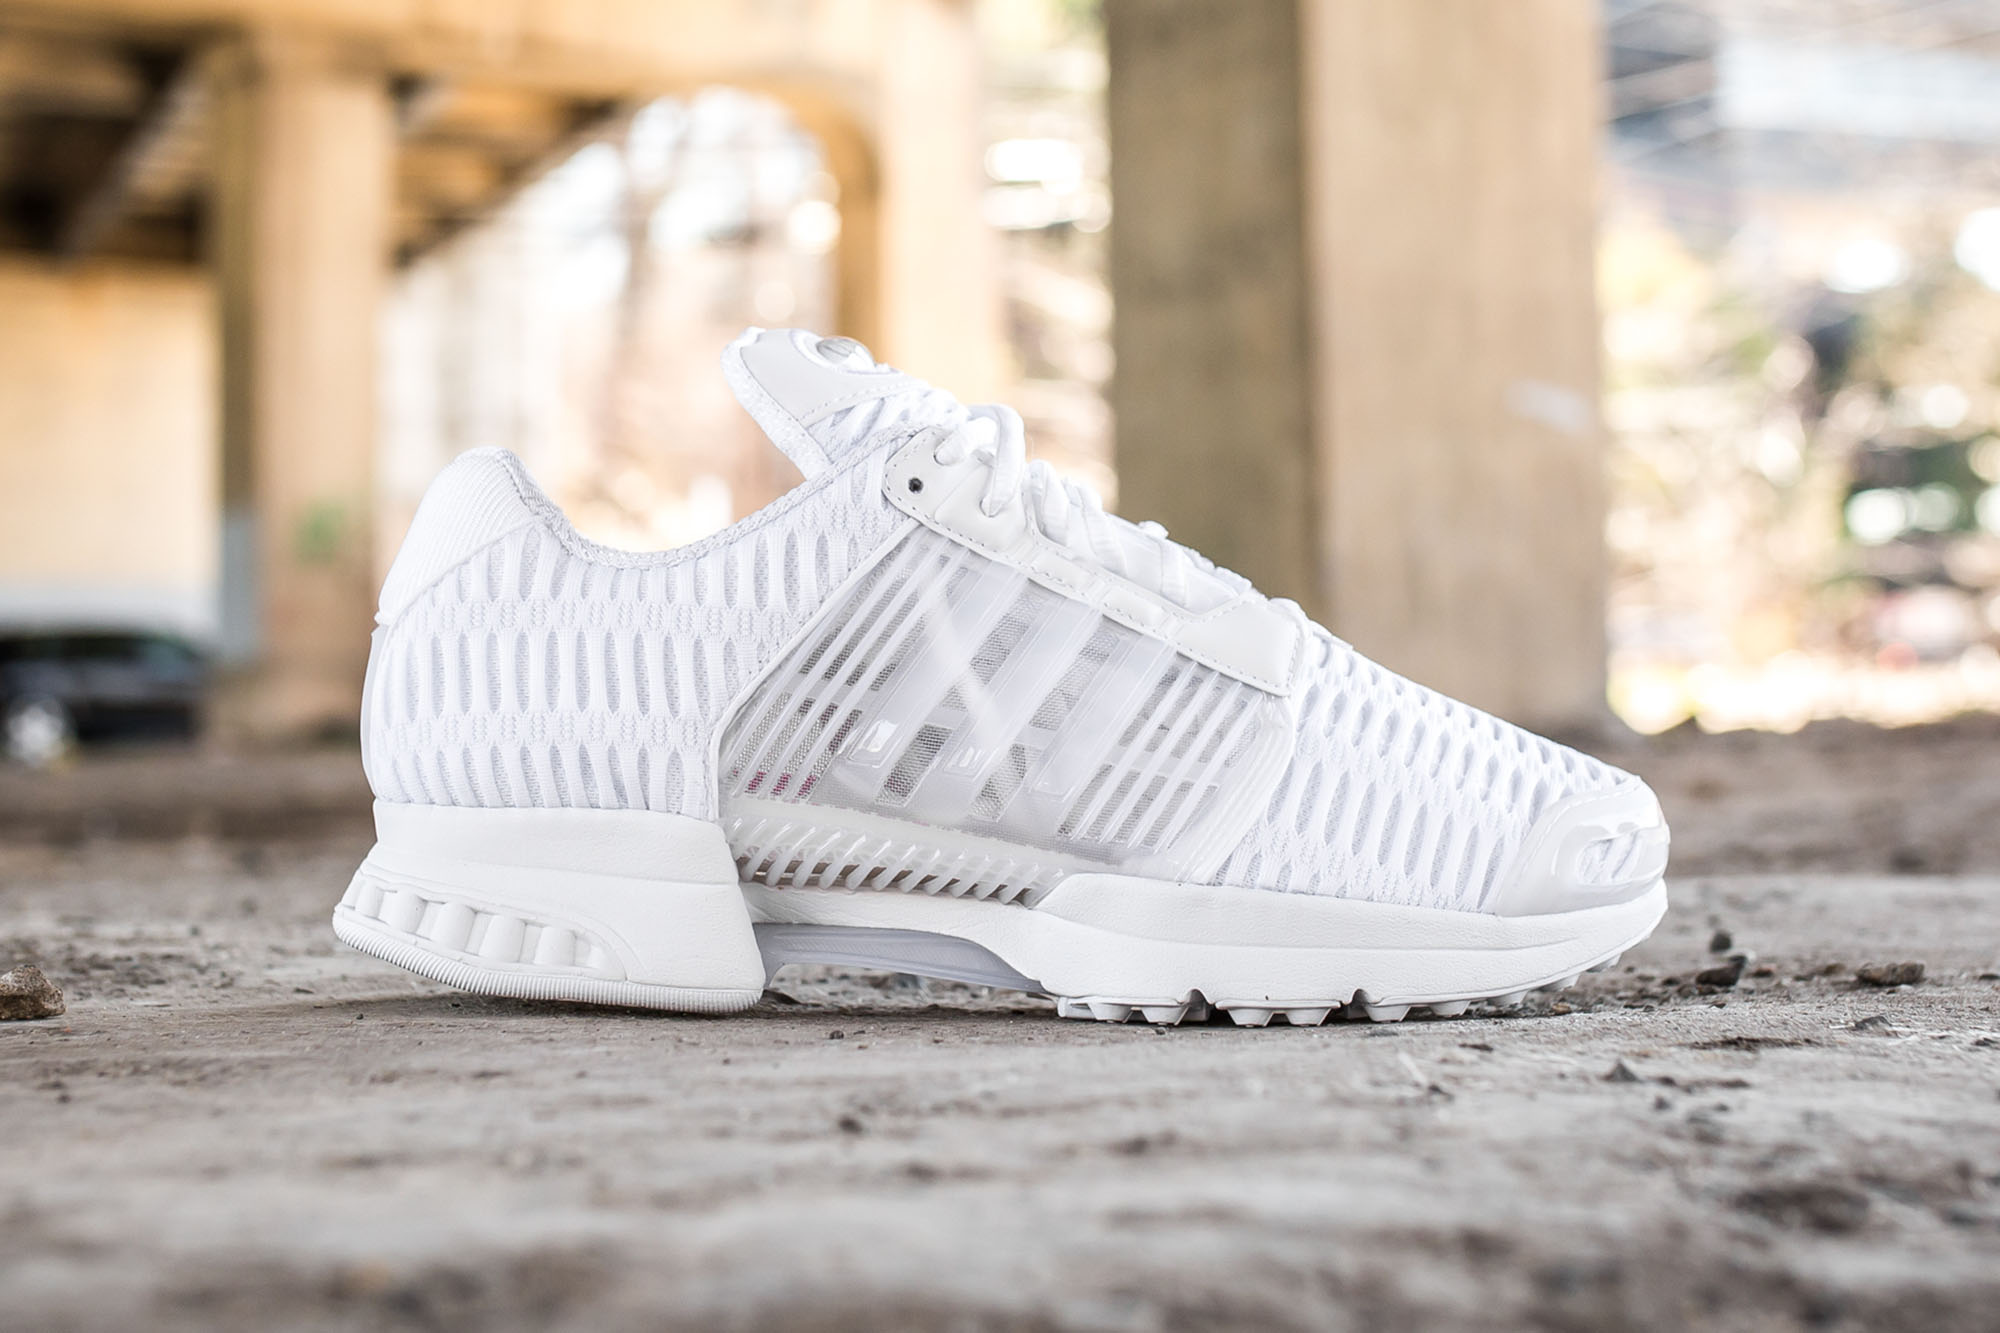 superior quality 5c199 6fb5d Take a Good Look at the adidas Climacool 1 'Tonal Pack ...